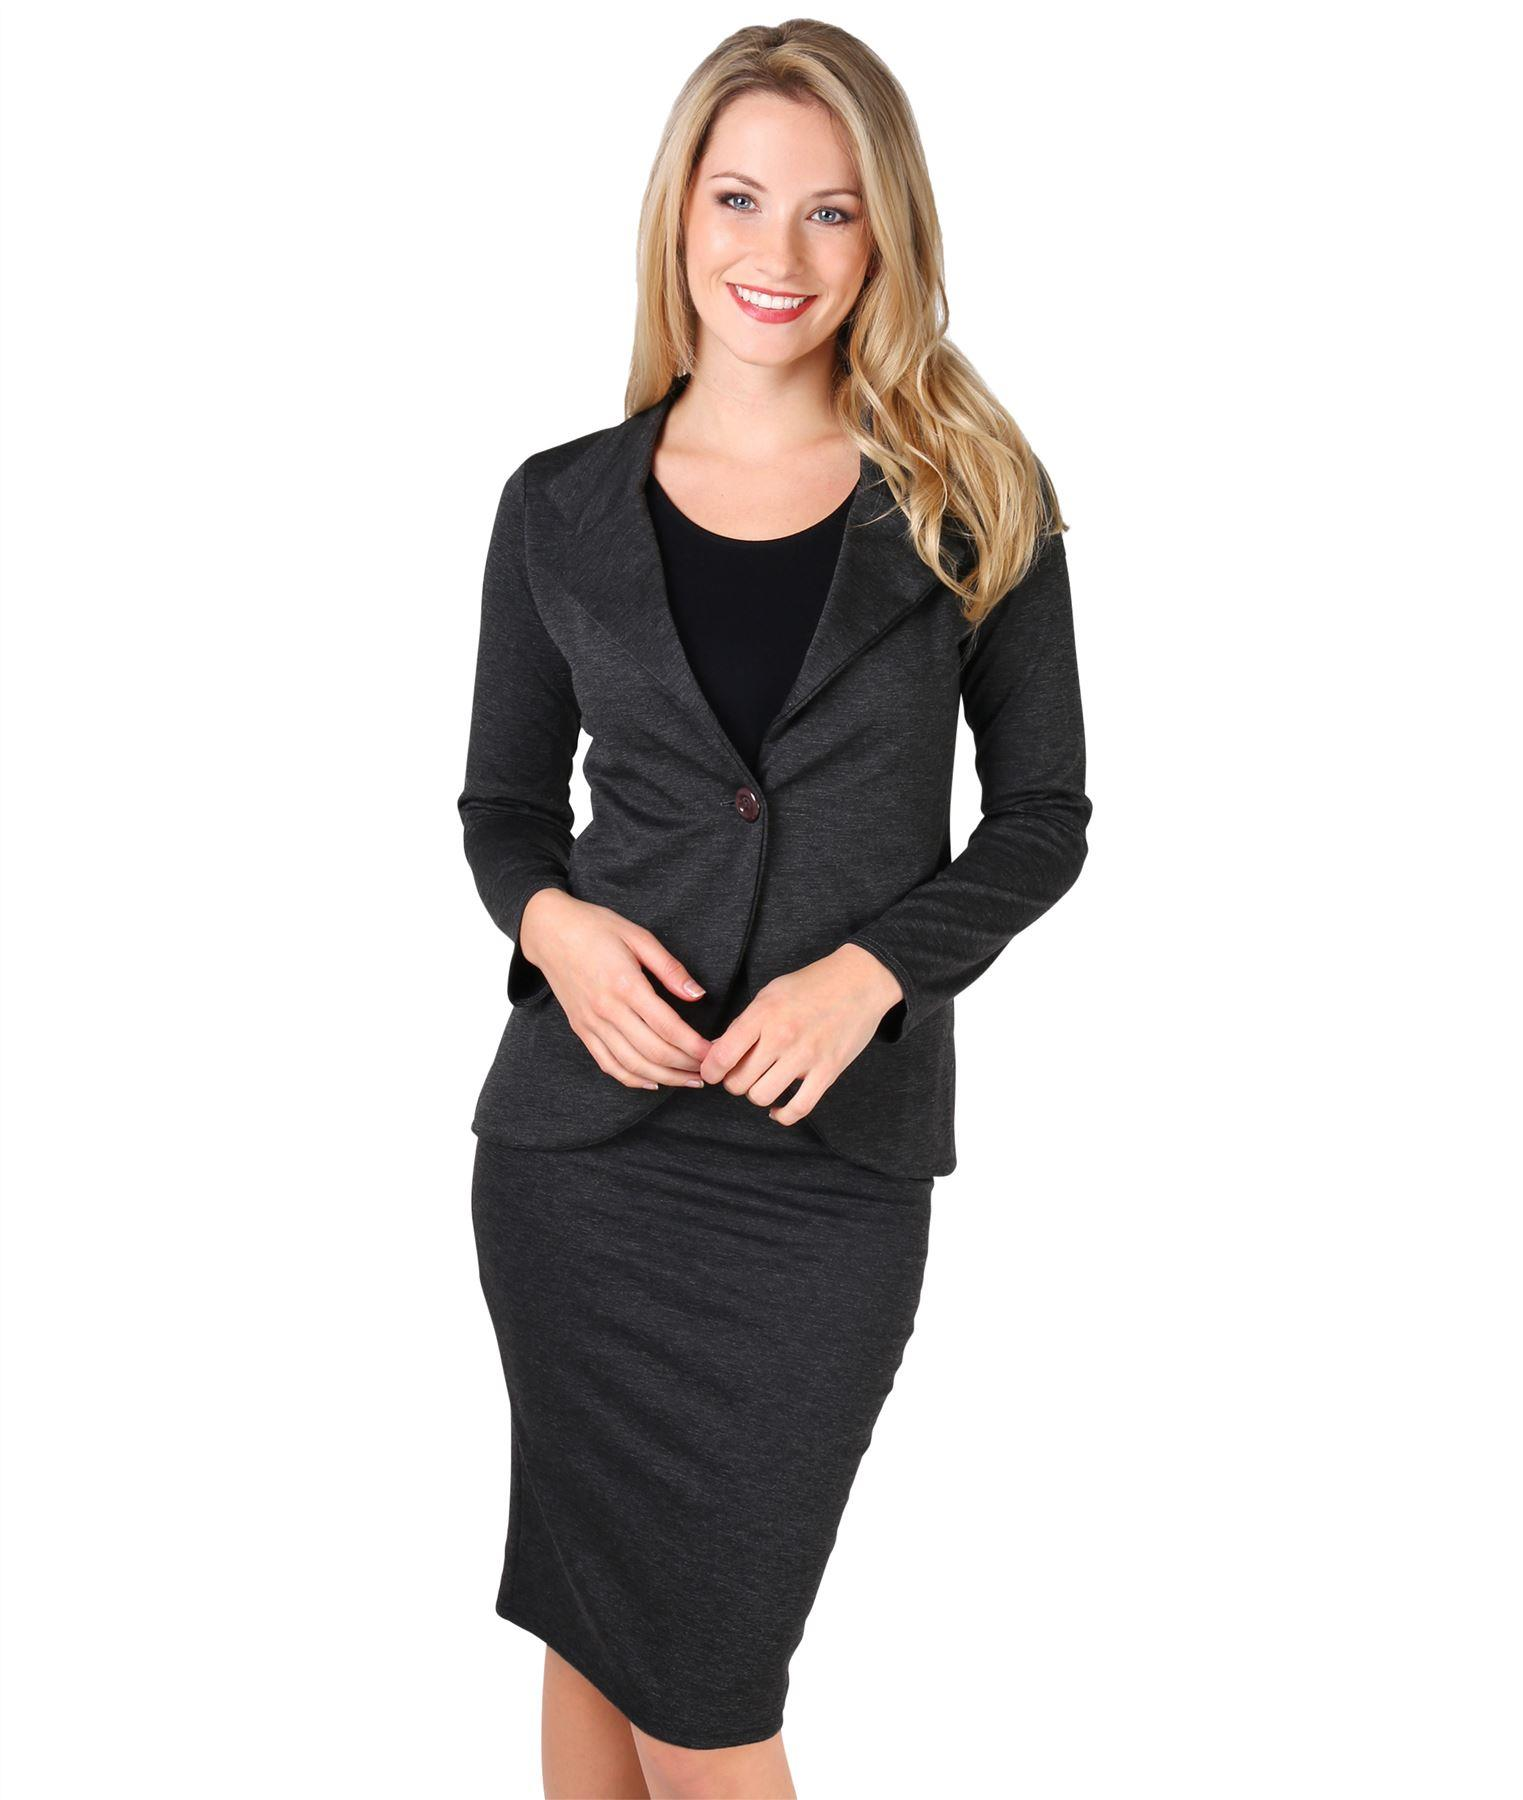 Womens-Ladies-Pencil-Skirt-Midi-Knee-Long-High-Waist-Work-Office-Business-Smart thumbnail 6